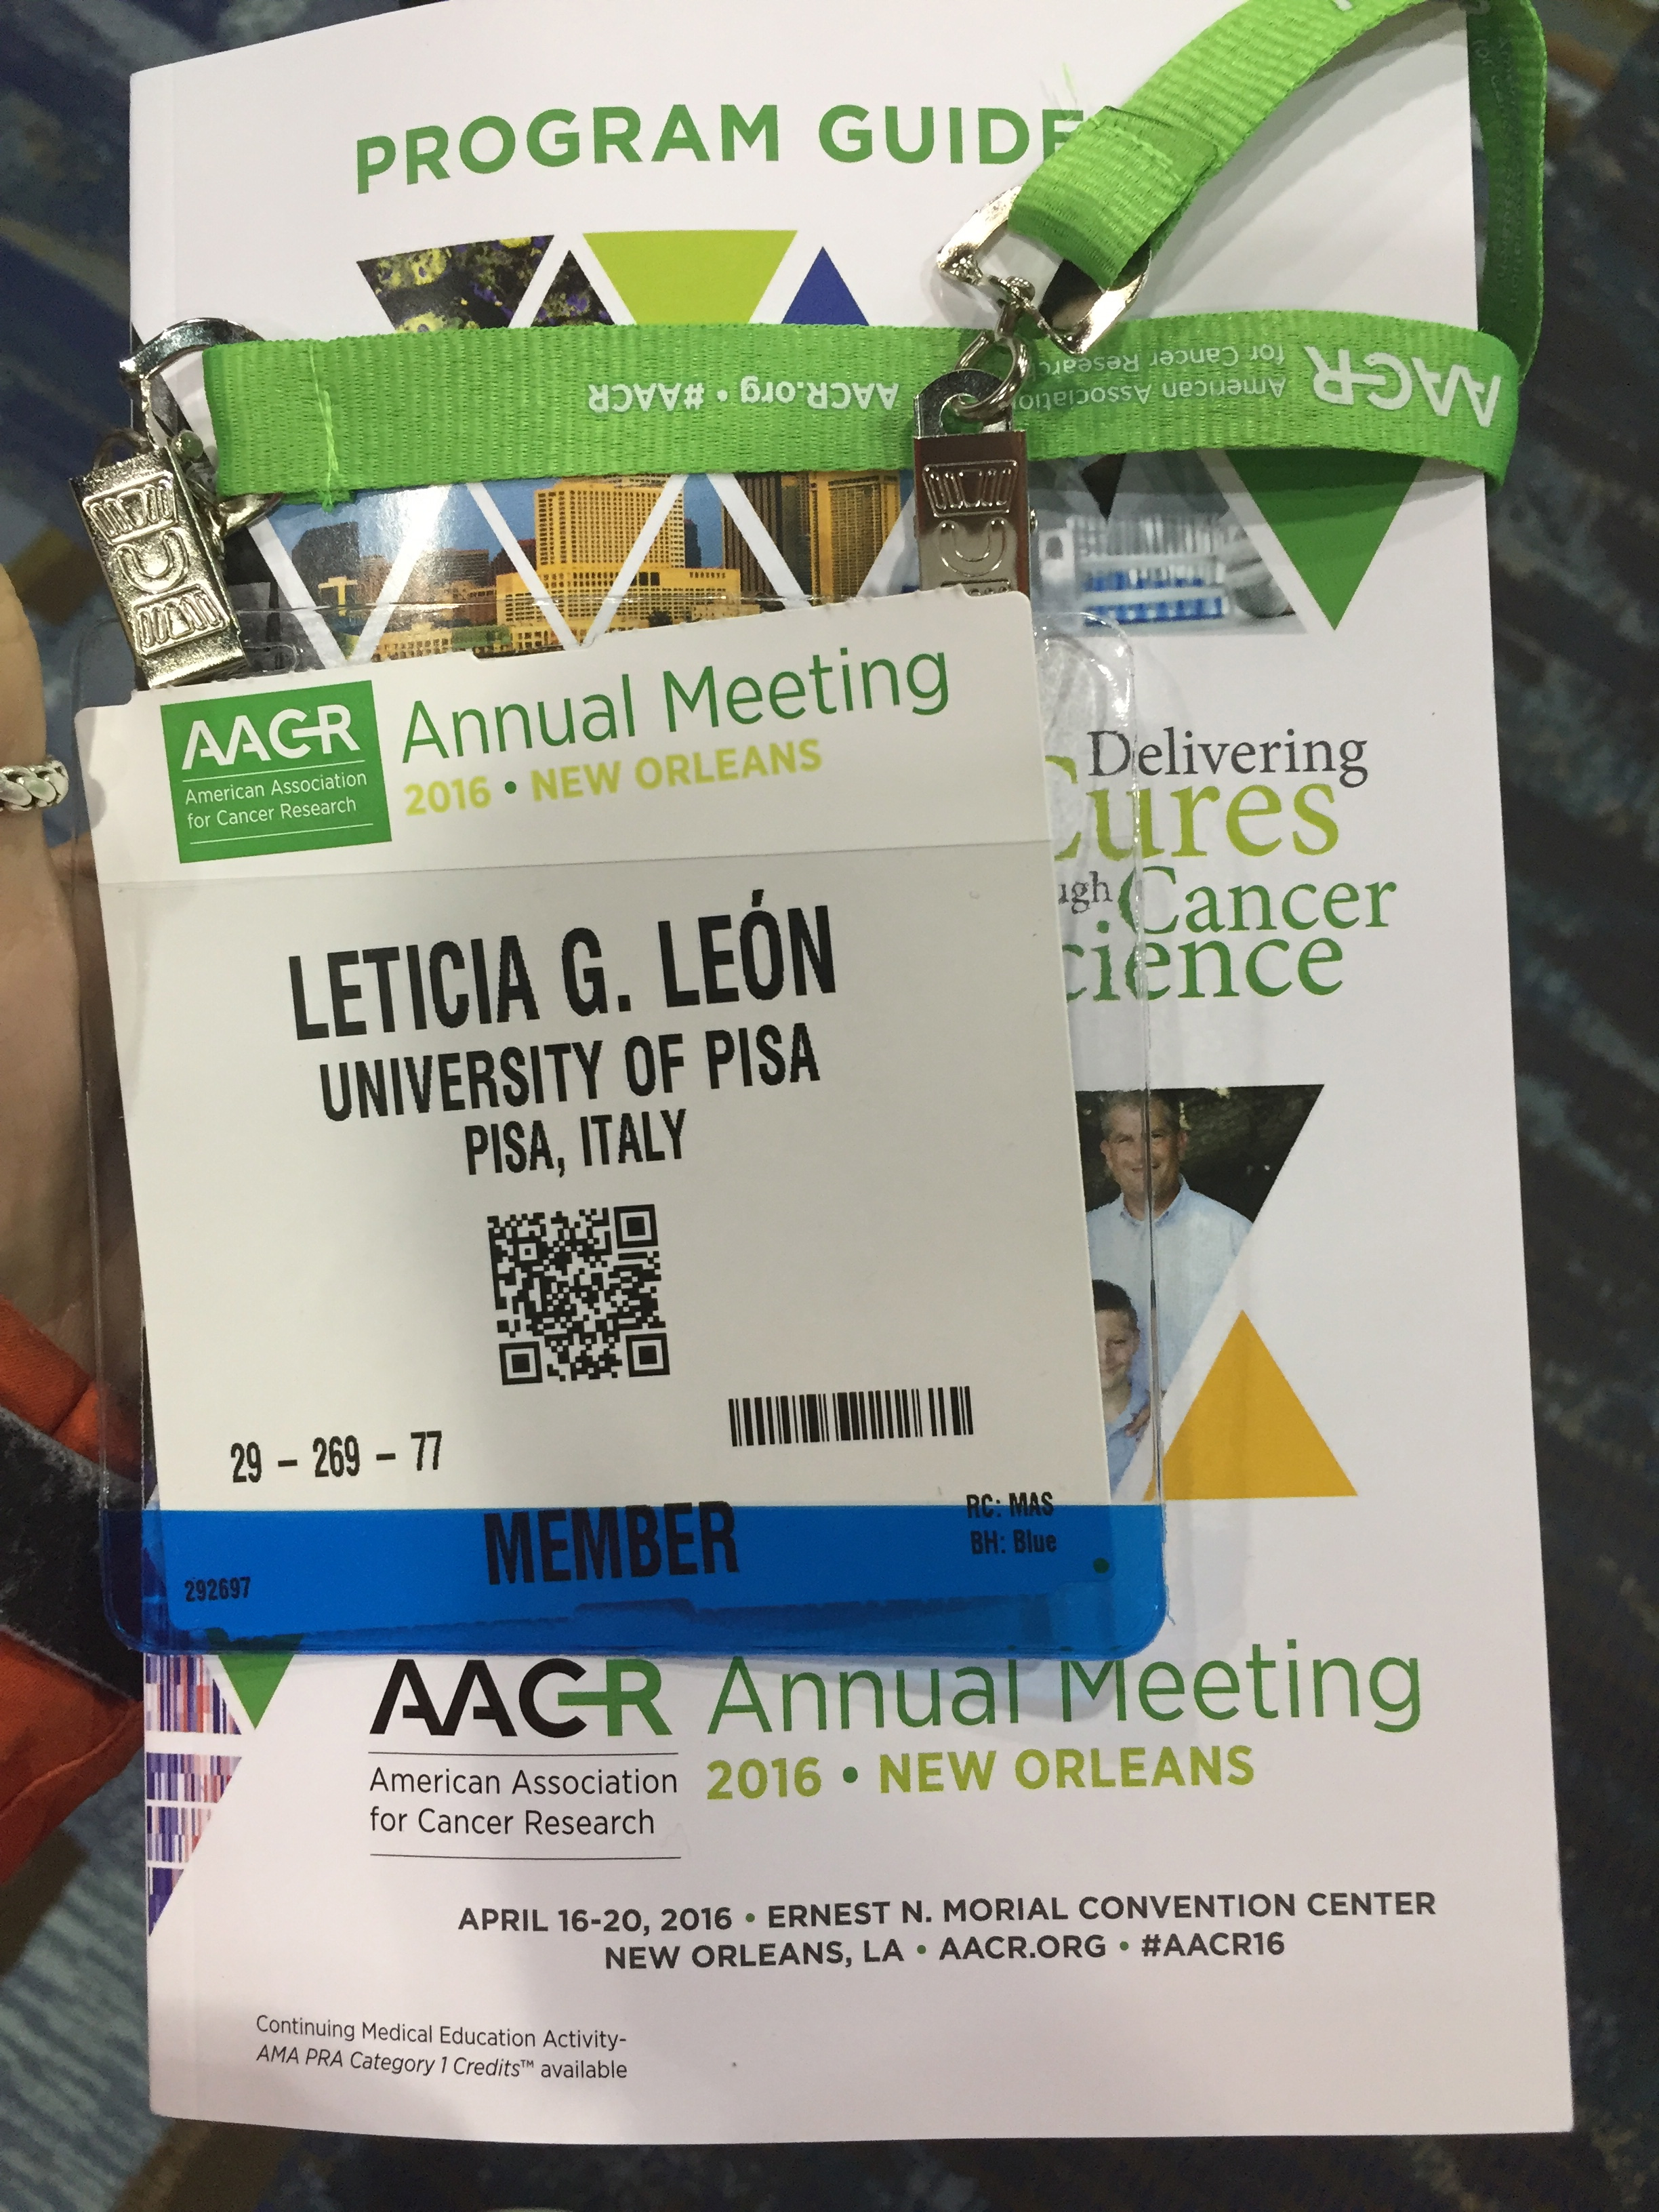 At AACR 2016 New Orleans